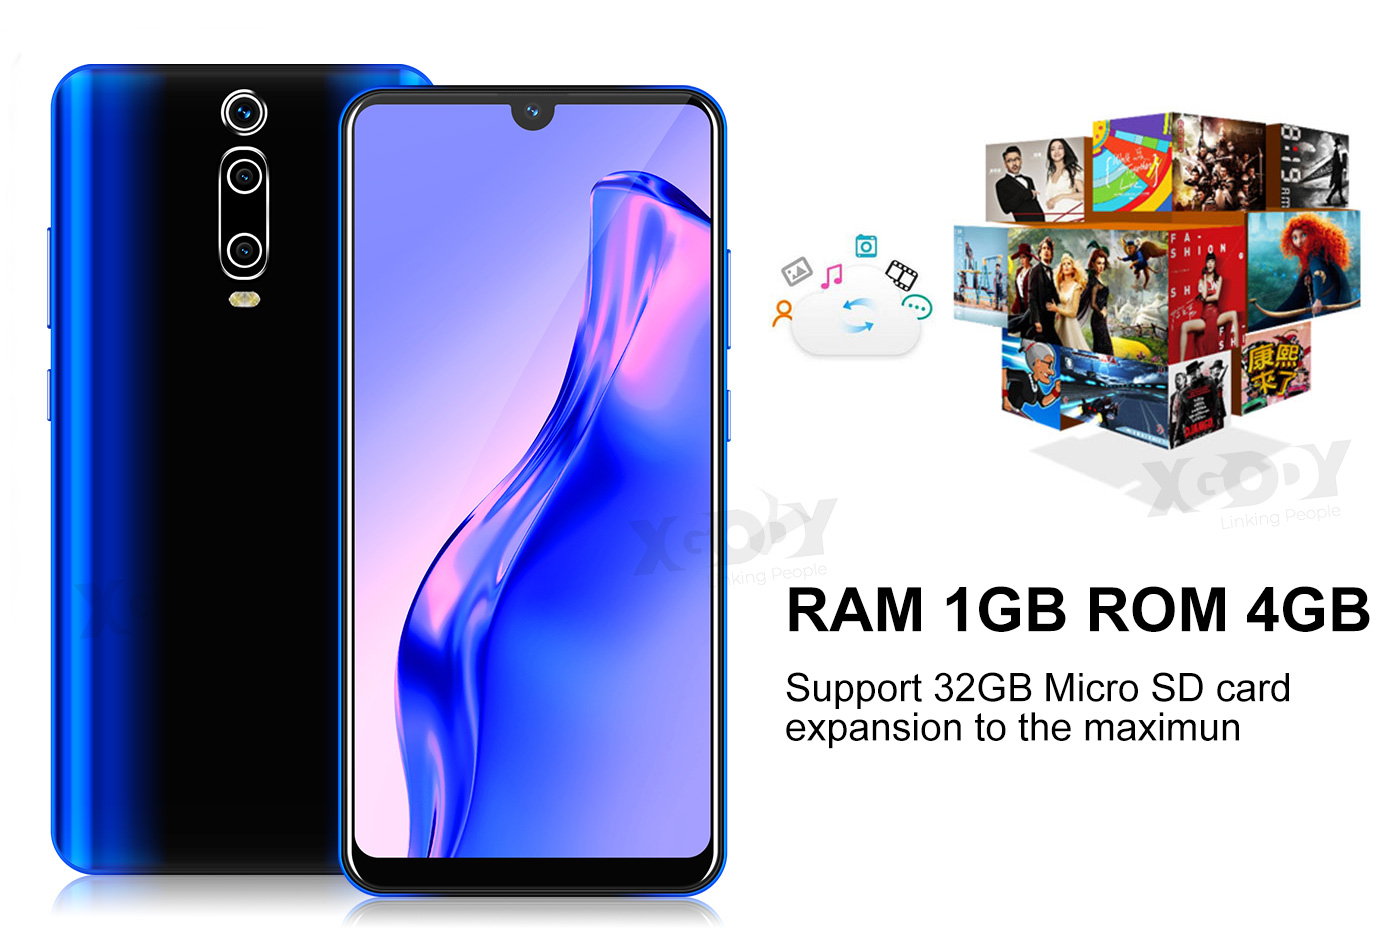 2020 New 6.3 inch Android 9.0 Unlocked Cell Phone Smartphone Quad Core Dual SIM